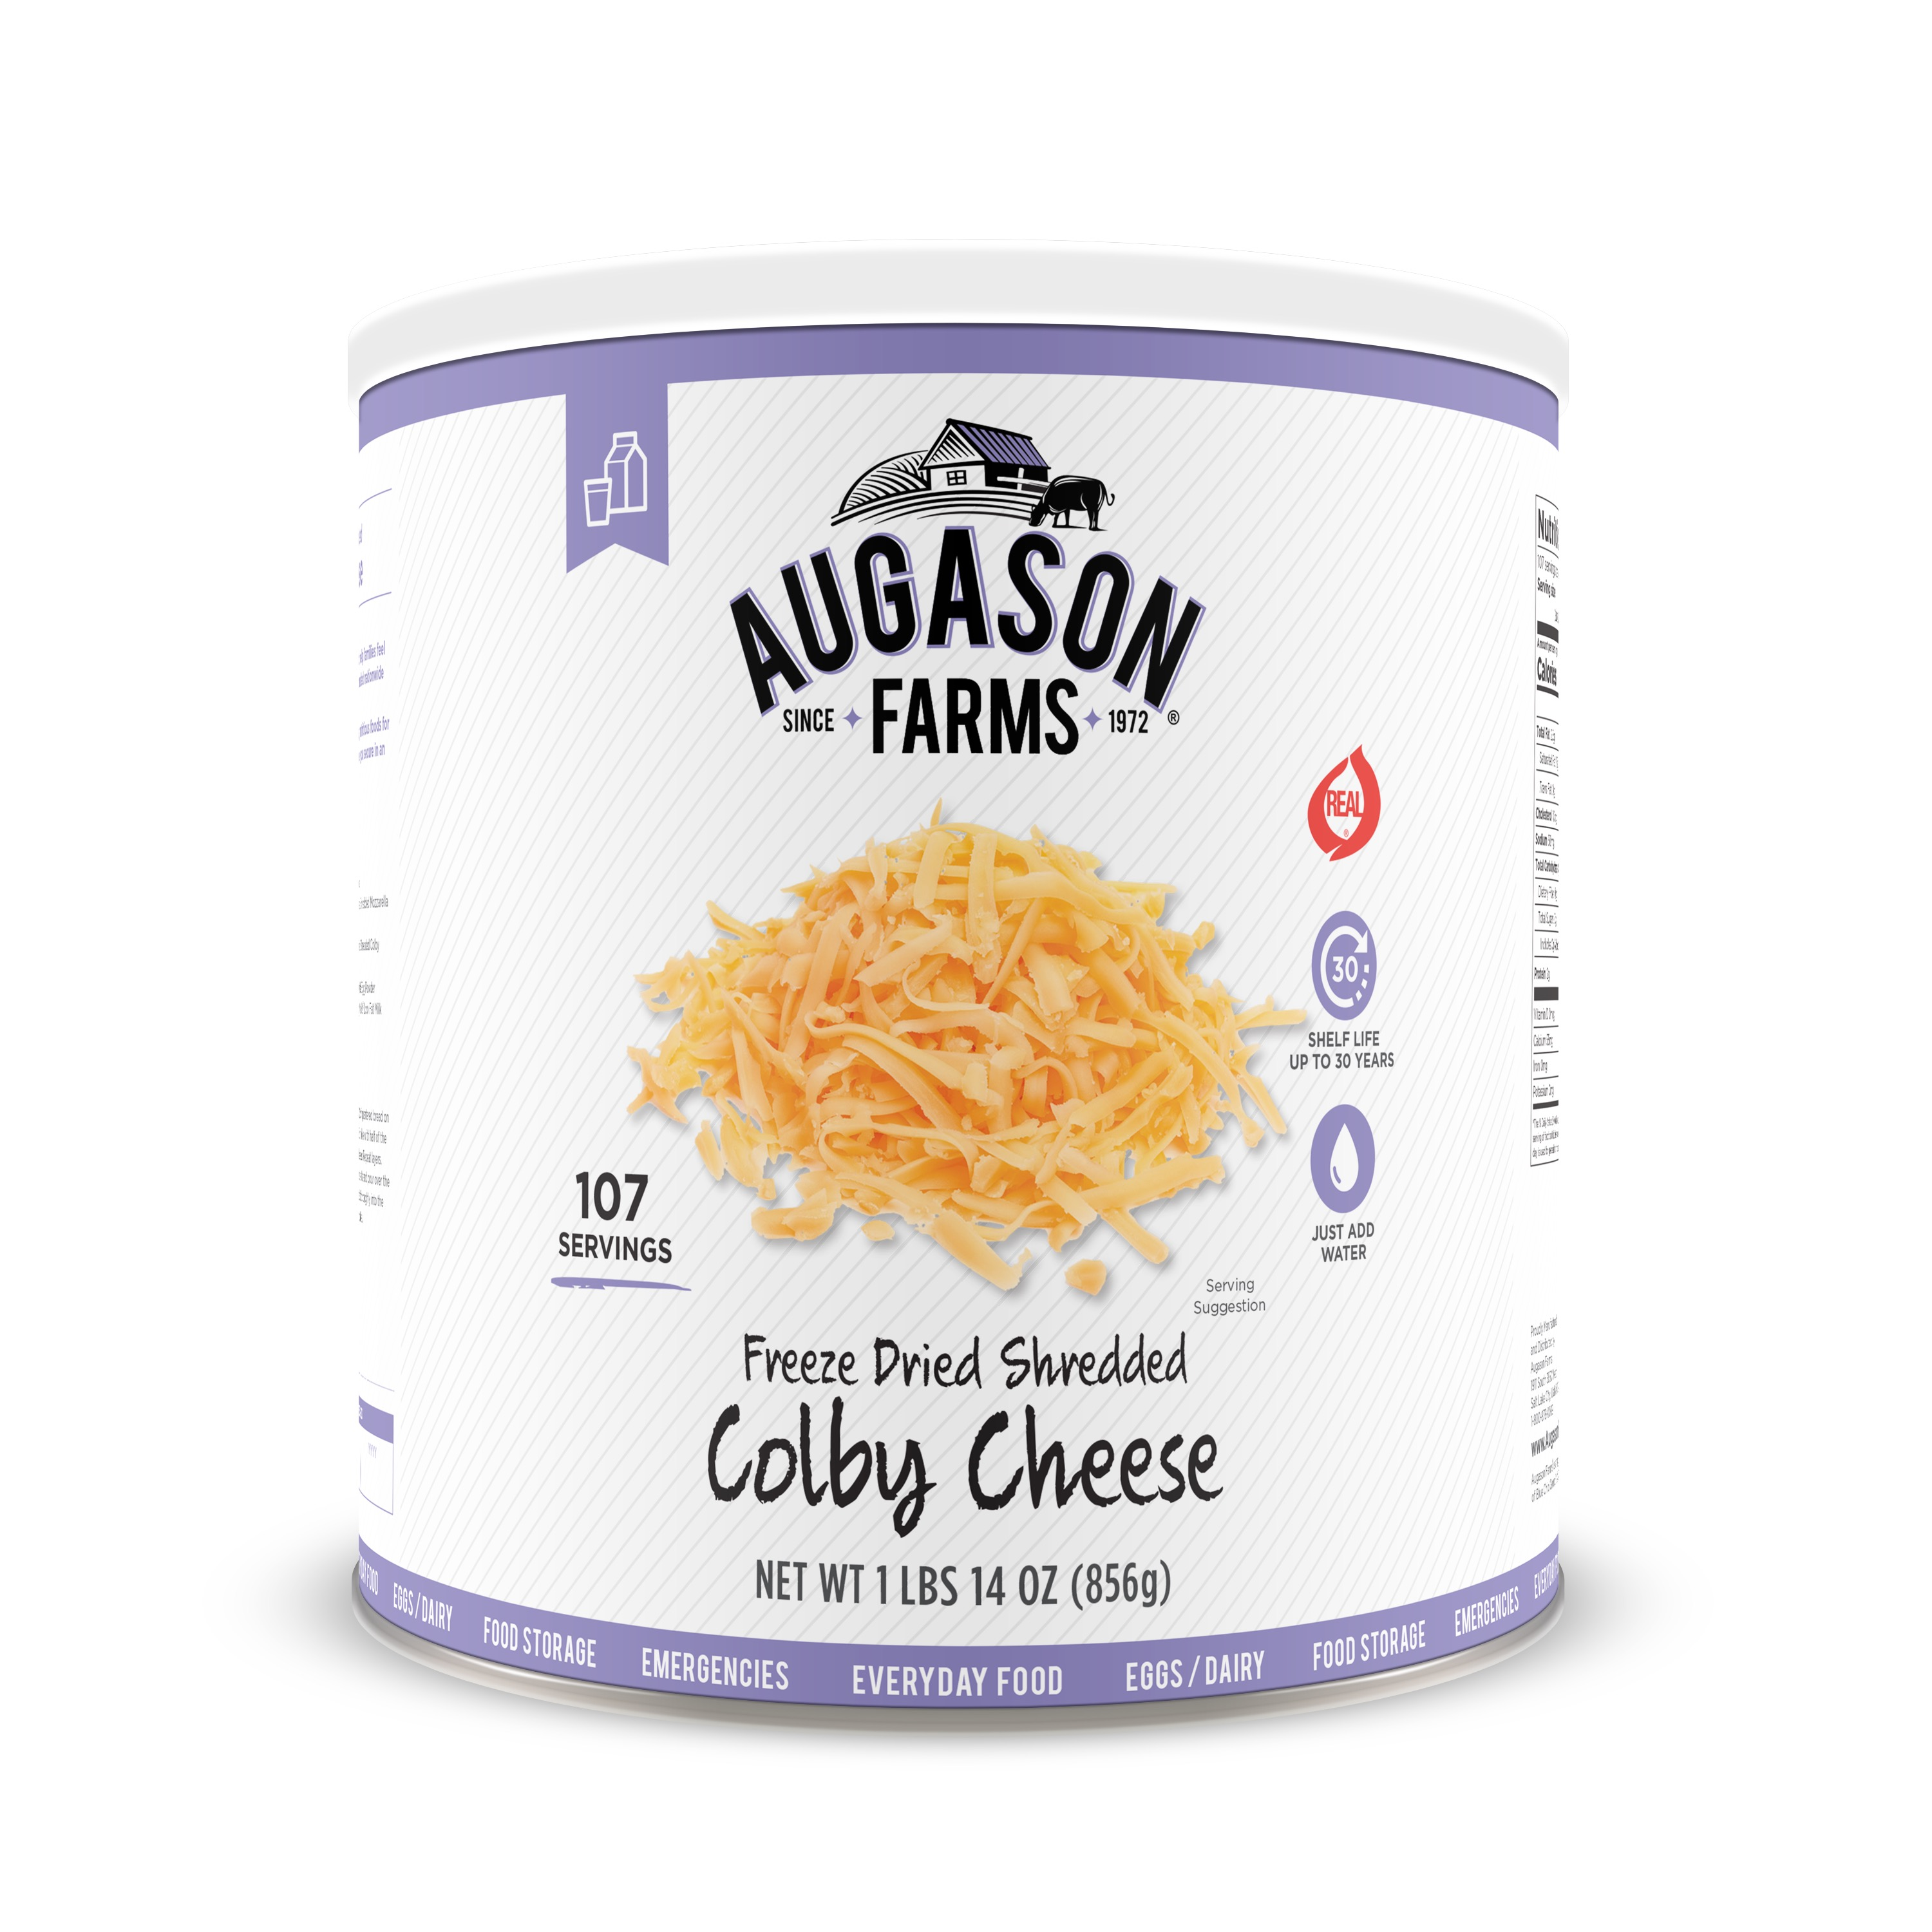 Augason Farms Freeze Dried Shredded Colby Cheese 1 lbs 14 oz No. 10 Can by Blue Chip Group